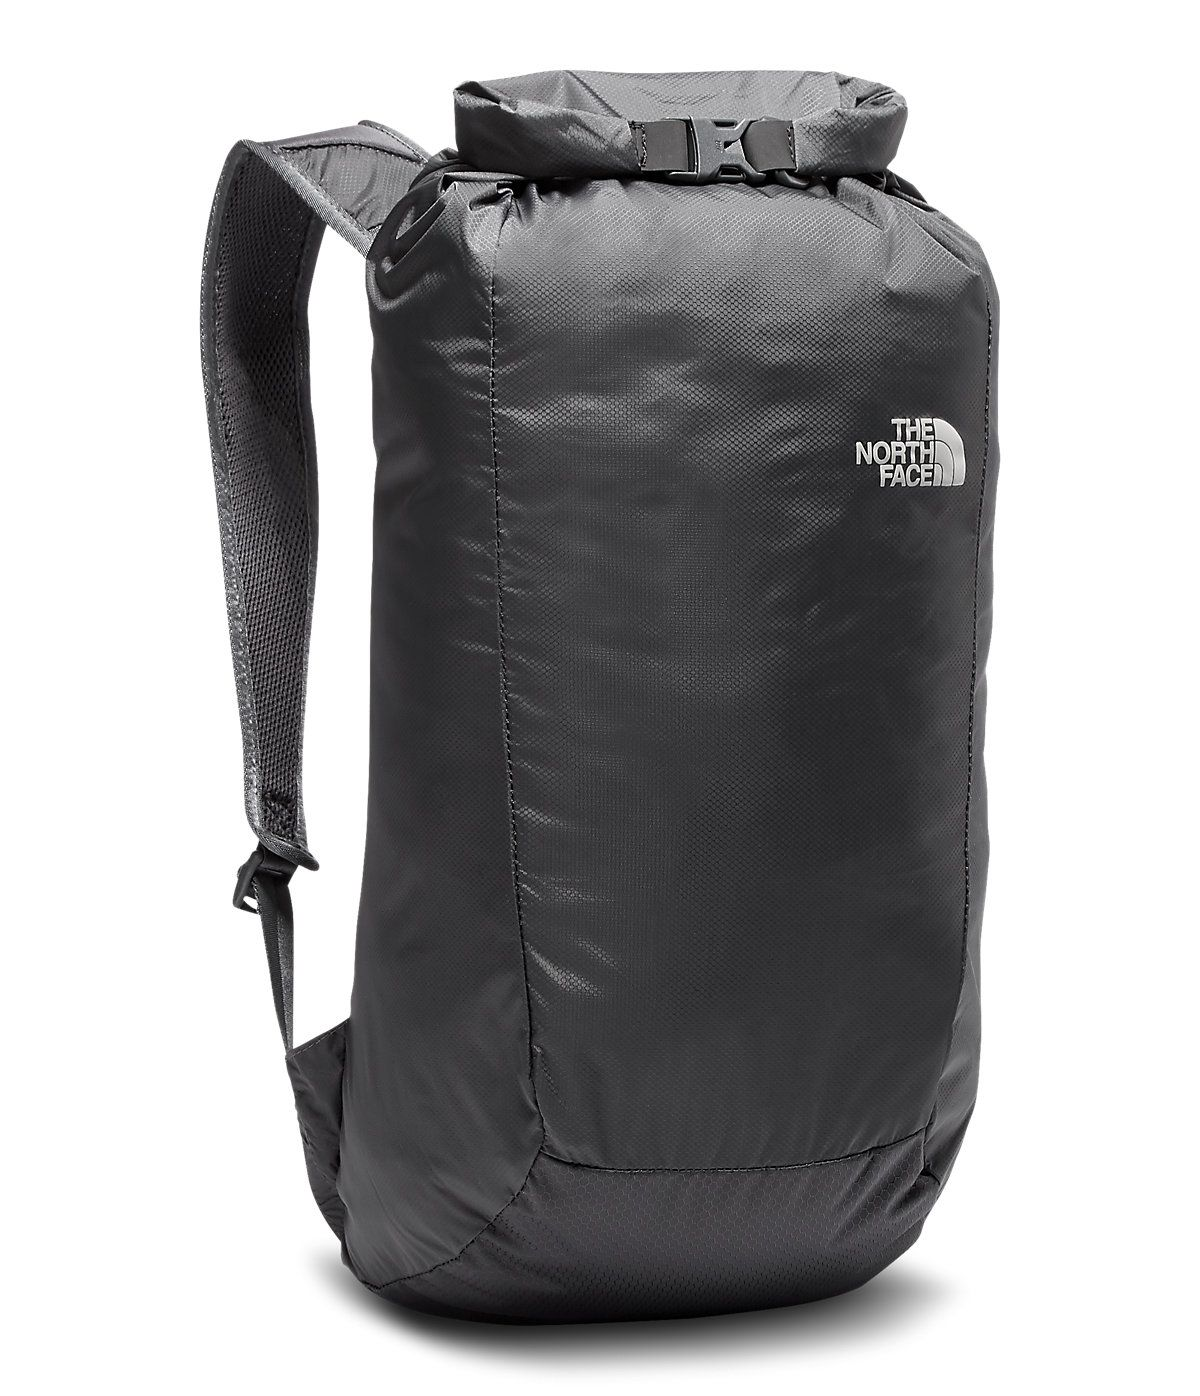 e649df36c The North Face Flyweight Rolltop Backpack in 2019 | Products ...